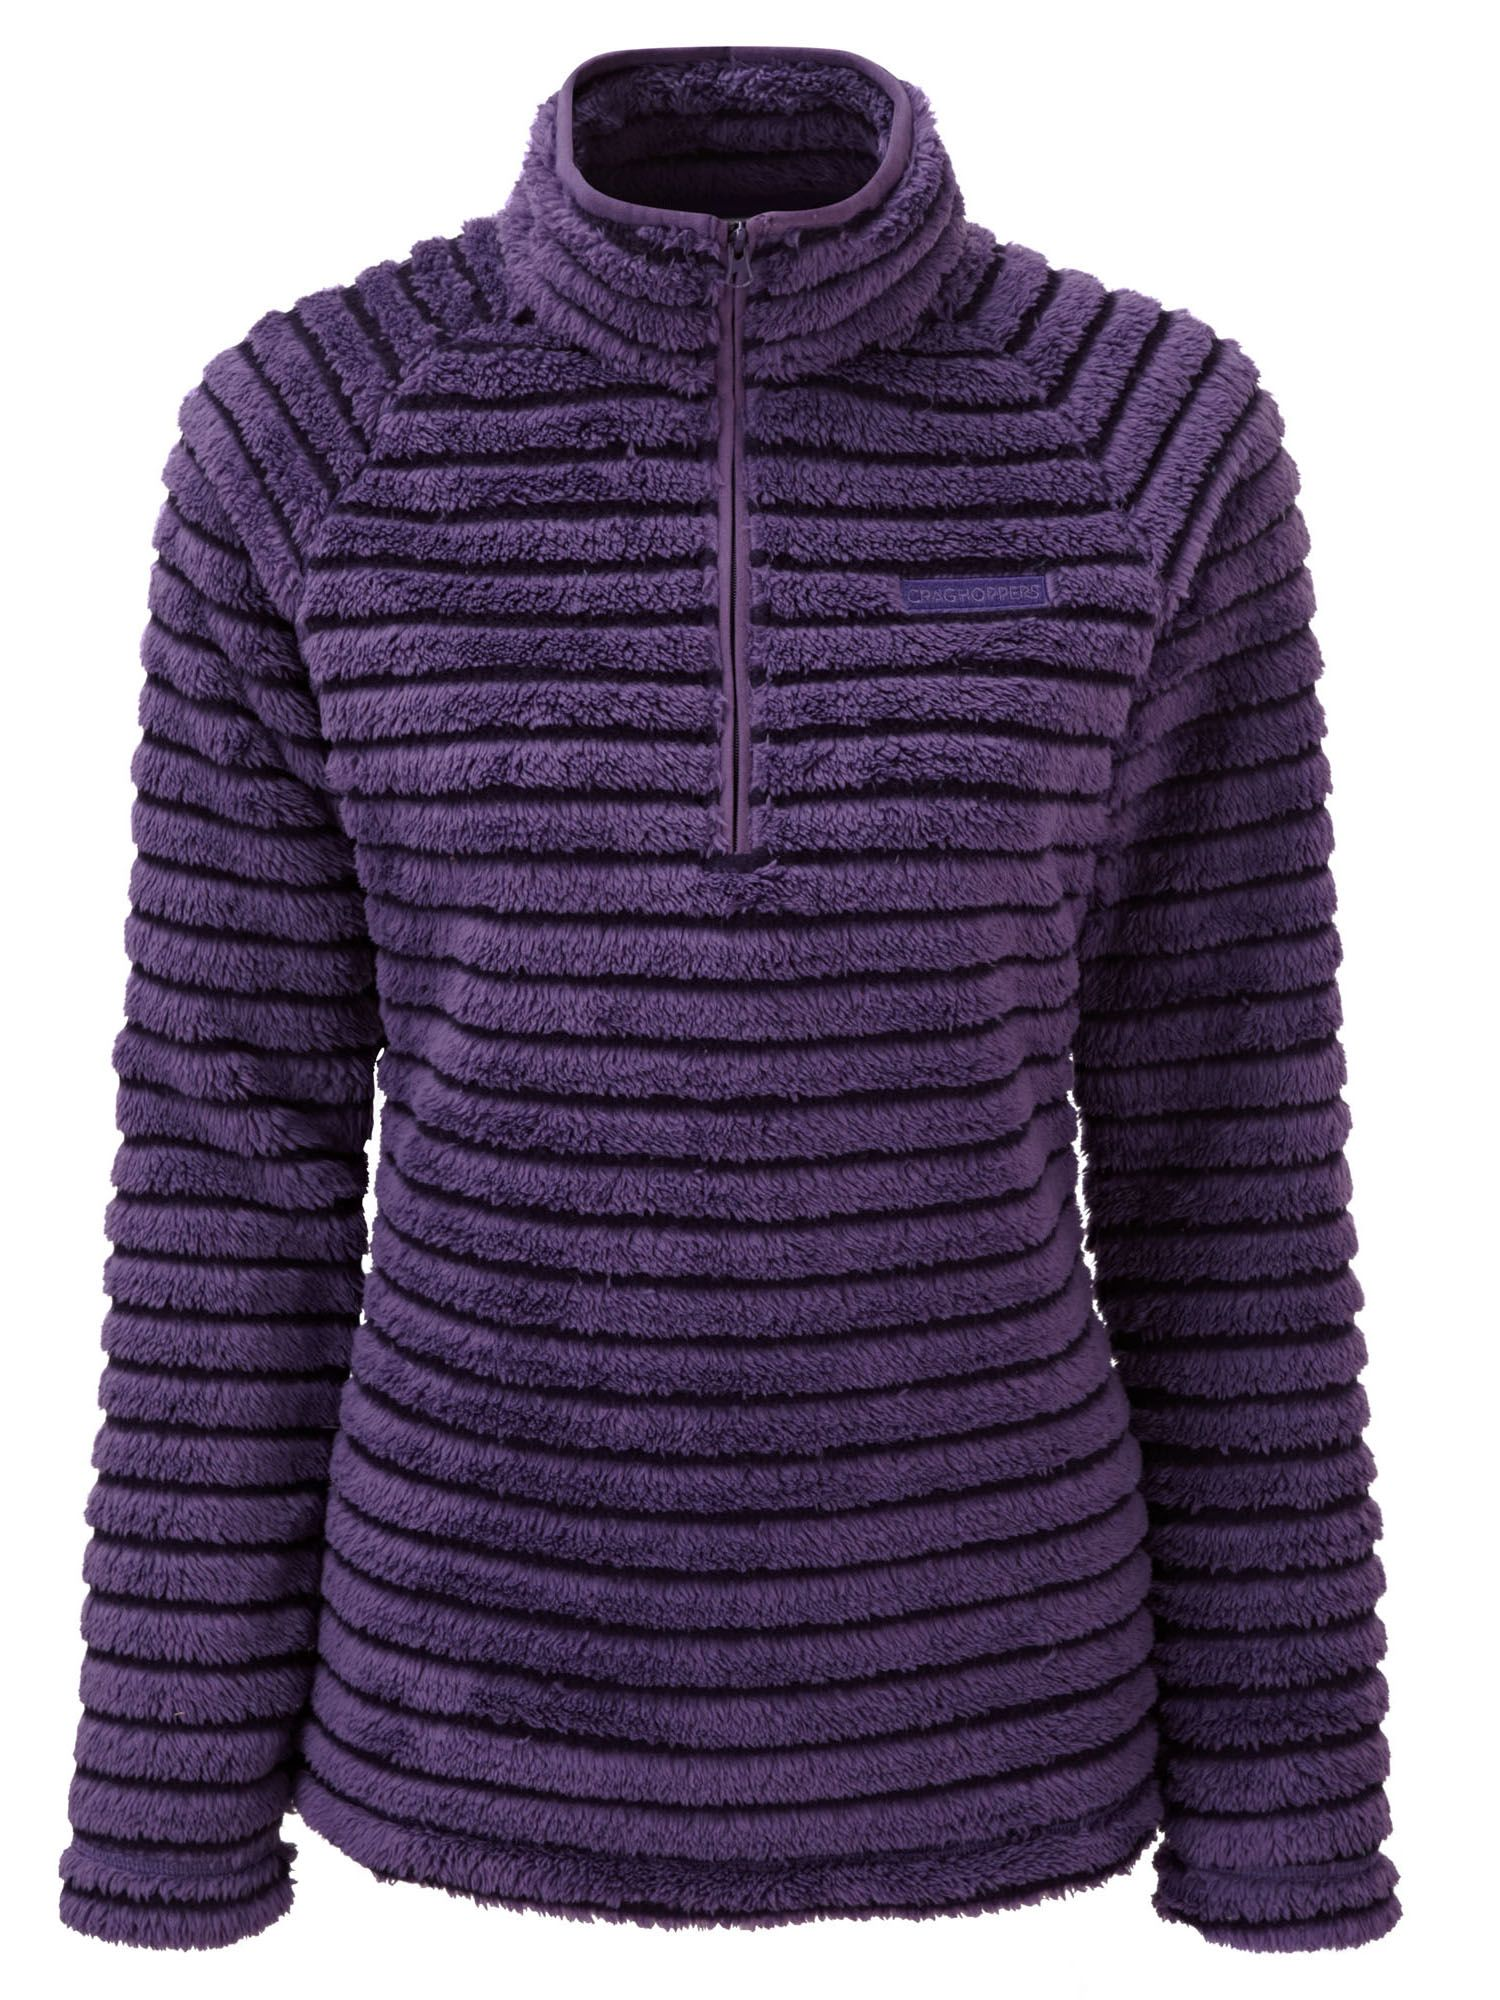 Craghoppers Appleby Half Zip Insulating Fleece, Plum